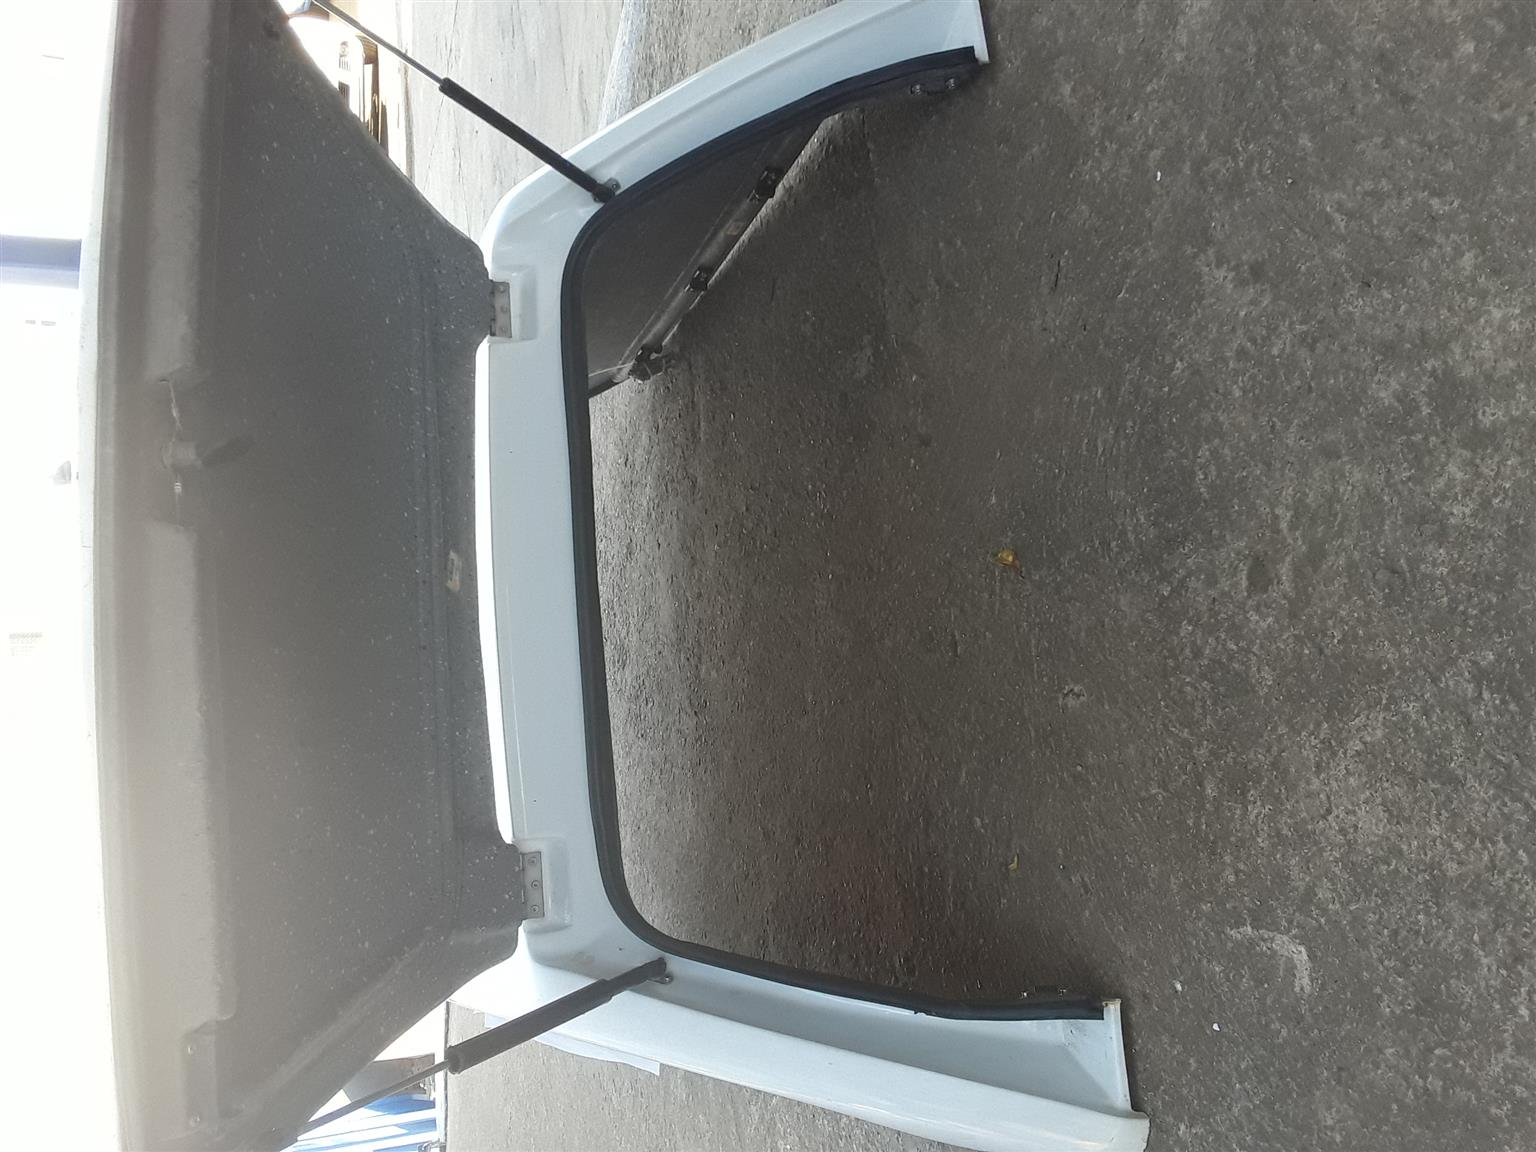 CHEV UTILITY BEEKMAN SOLID CANOPY